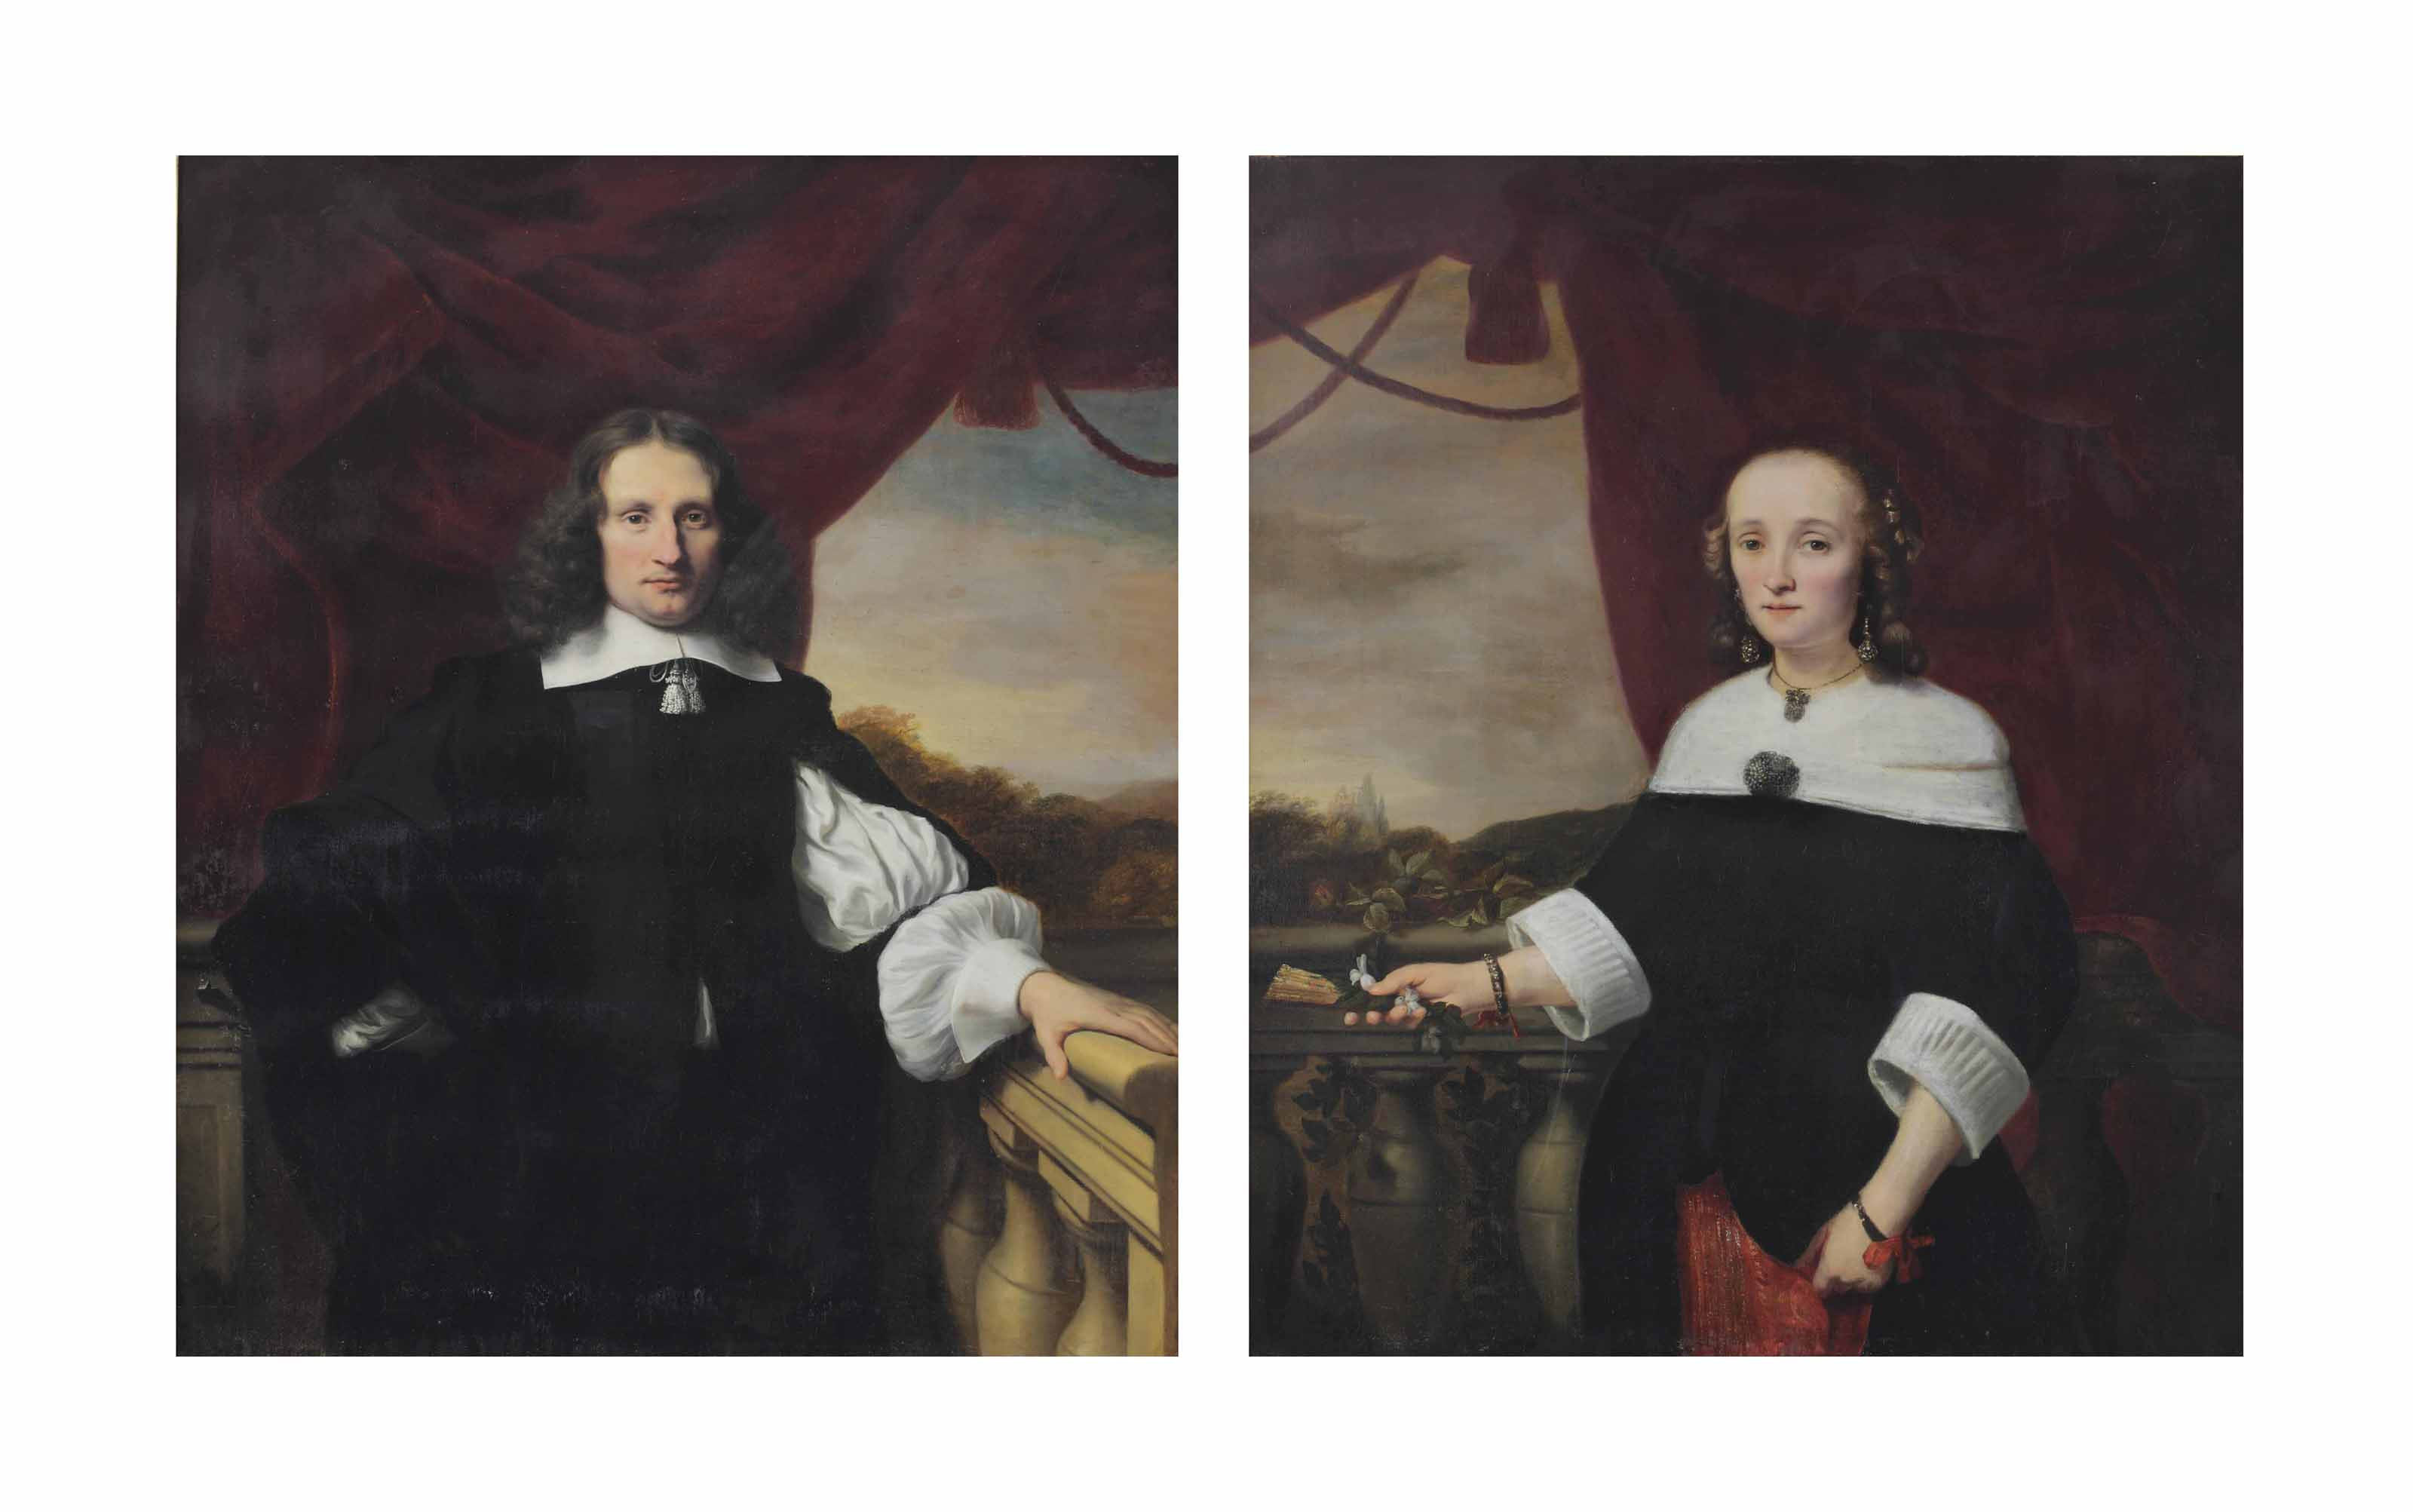 Portrait of Pieter Bouwens (1621-1680), three-quarter length, in a white chemise and black costume standing before a curtain on a balcony; and Portrait of his wife Anna Maria van Nutt (1622-1686), three-quarter length, in a red embroidered and black dress with white ruffs and collar, holding a fan and standing before a red curtain on a balcony